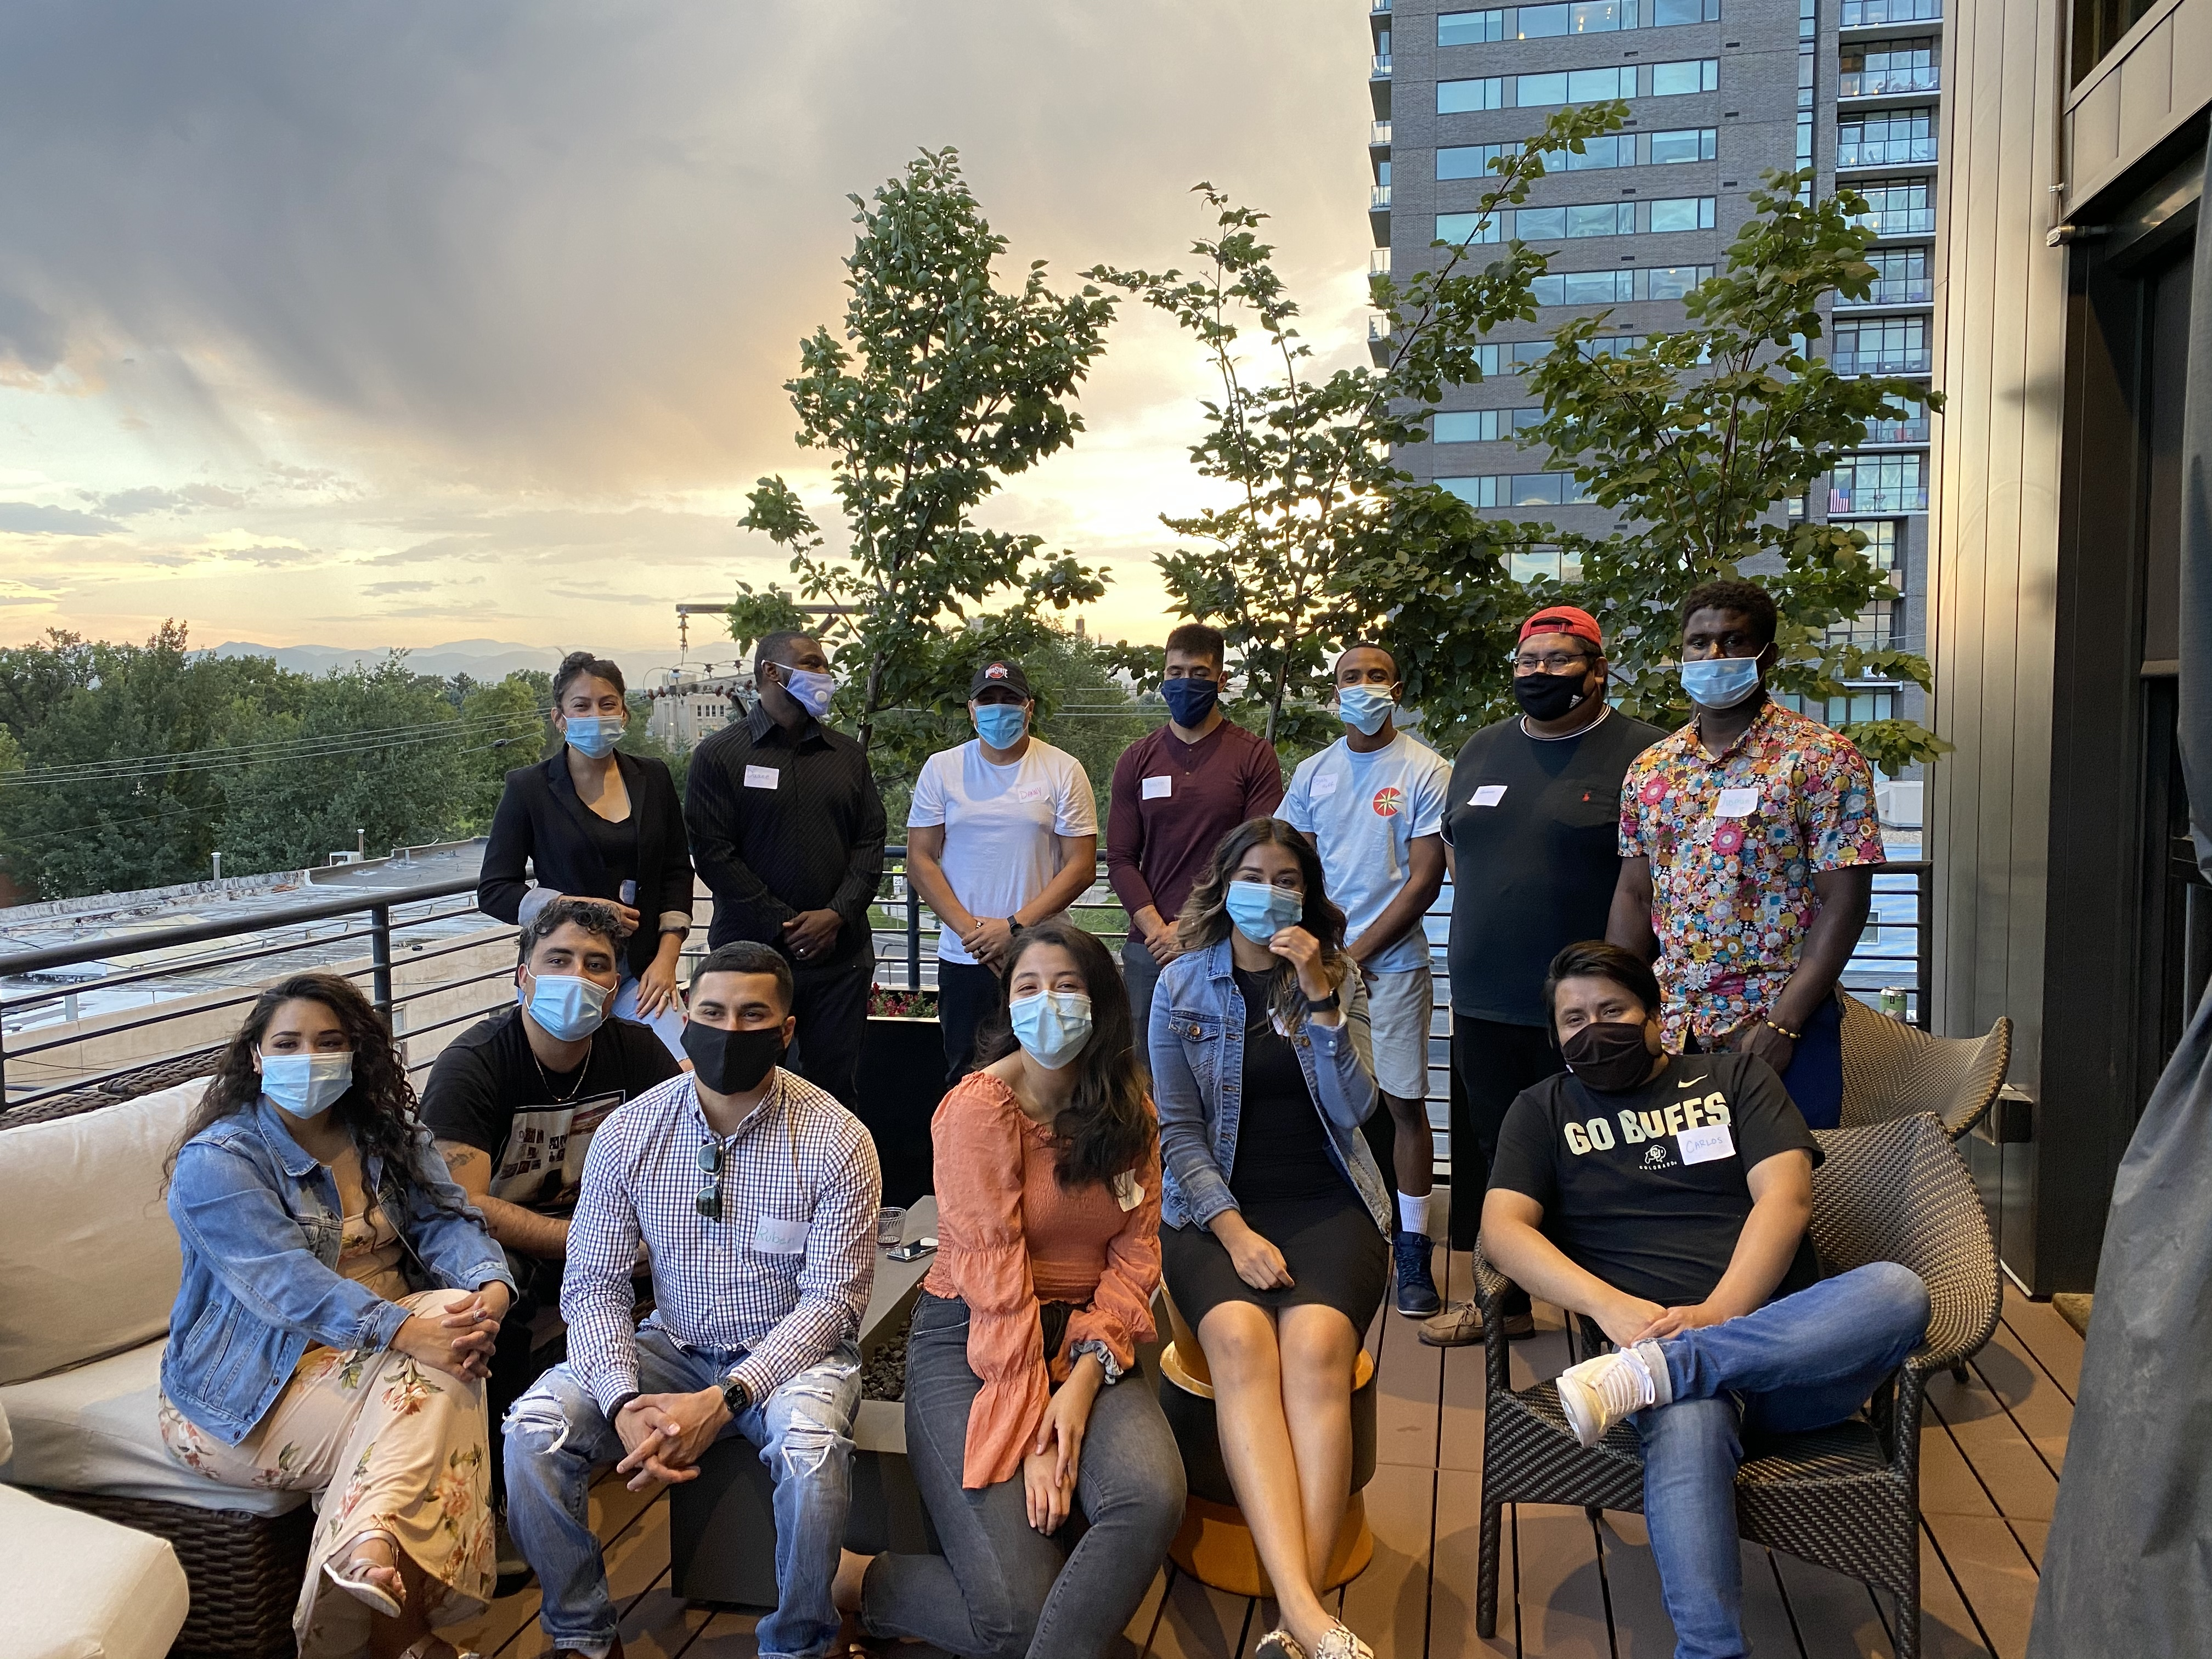 A group of young Denver Public Schools alumni wearing masks gather for a photo.